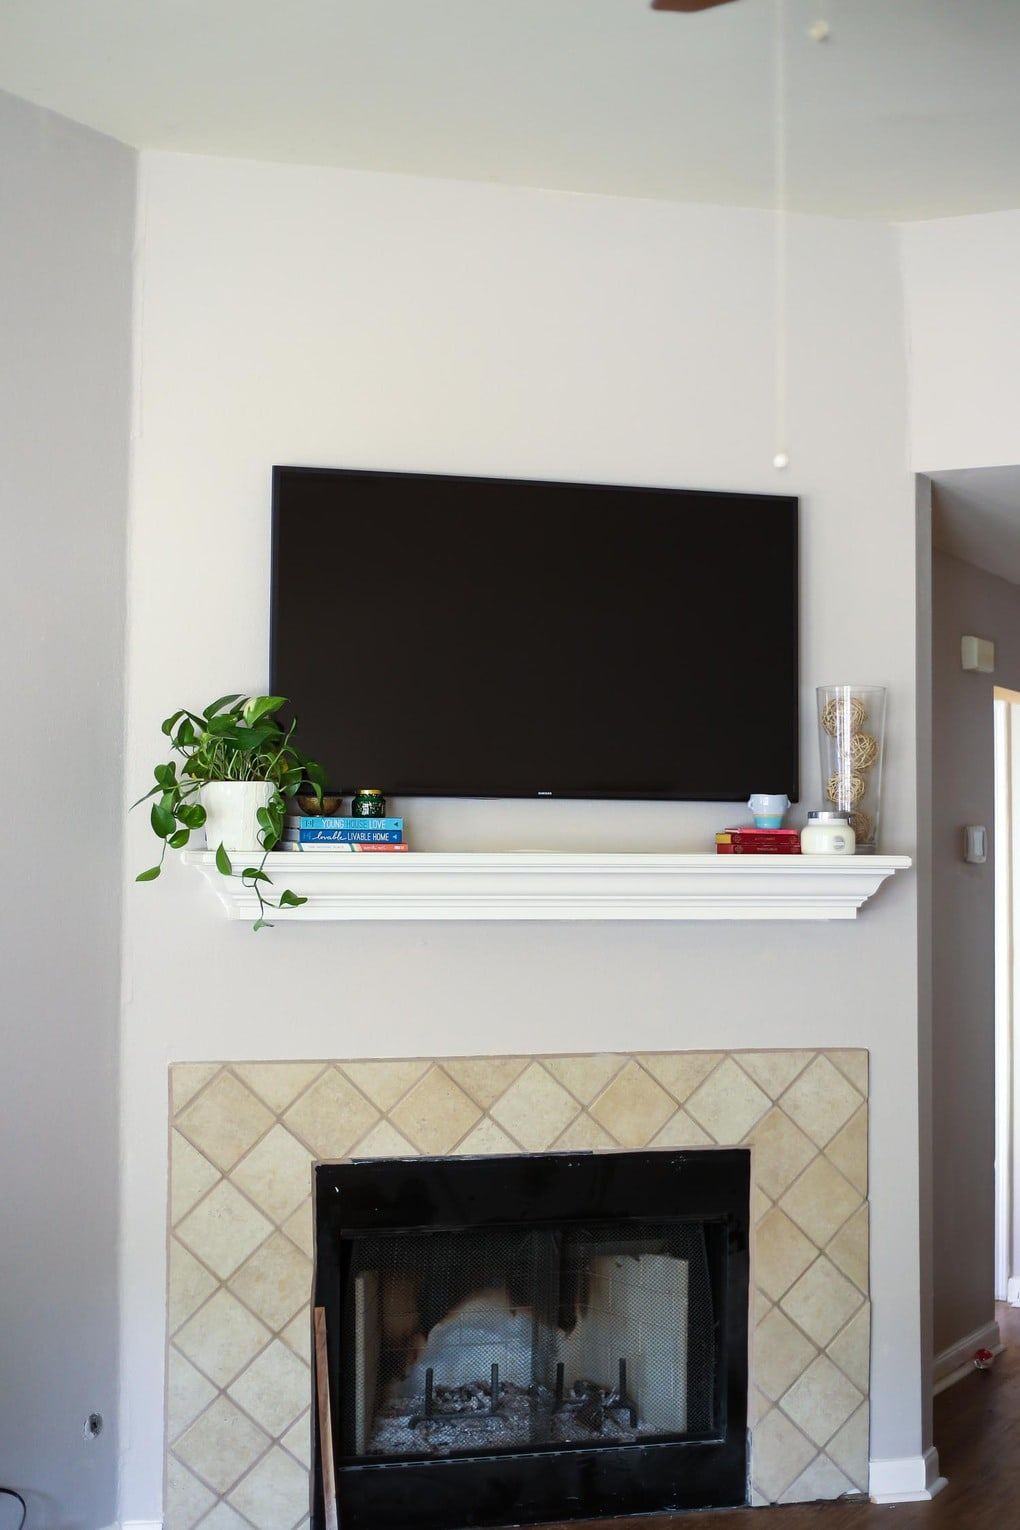 Decorating A Mantel With Television, How To Decorate Fireplace With Tv Over Mantel